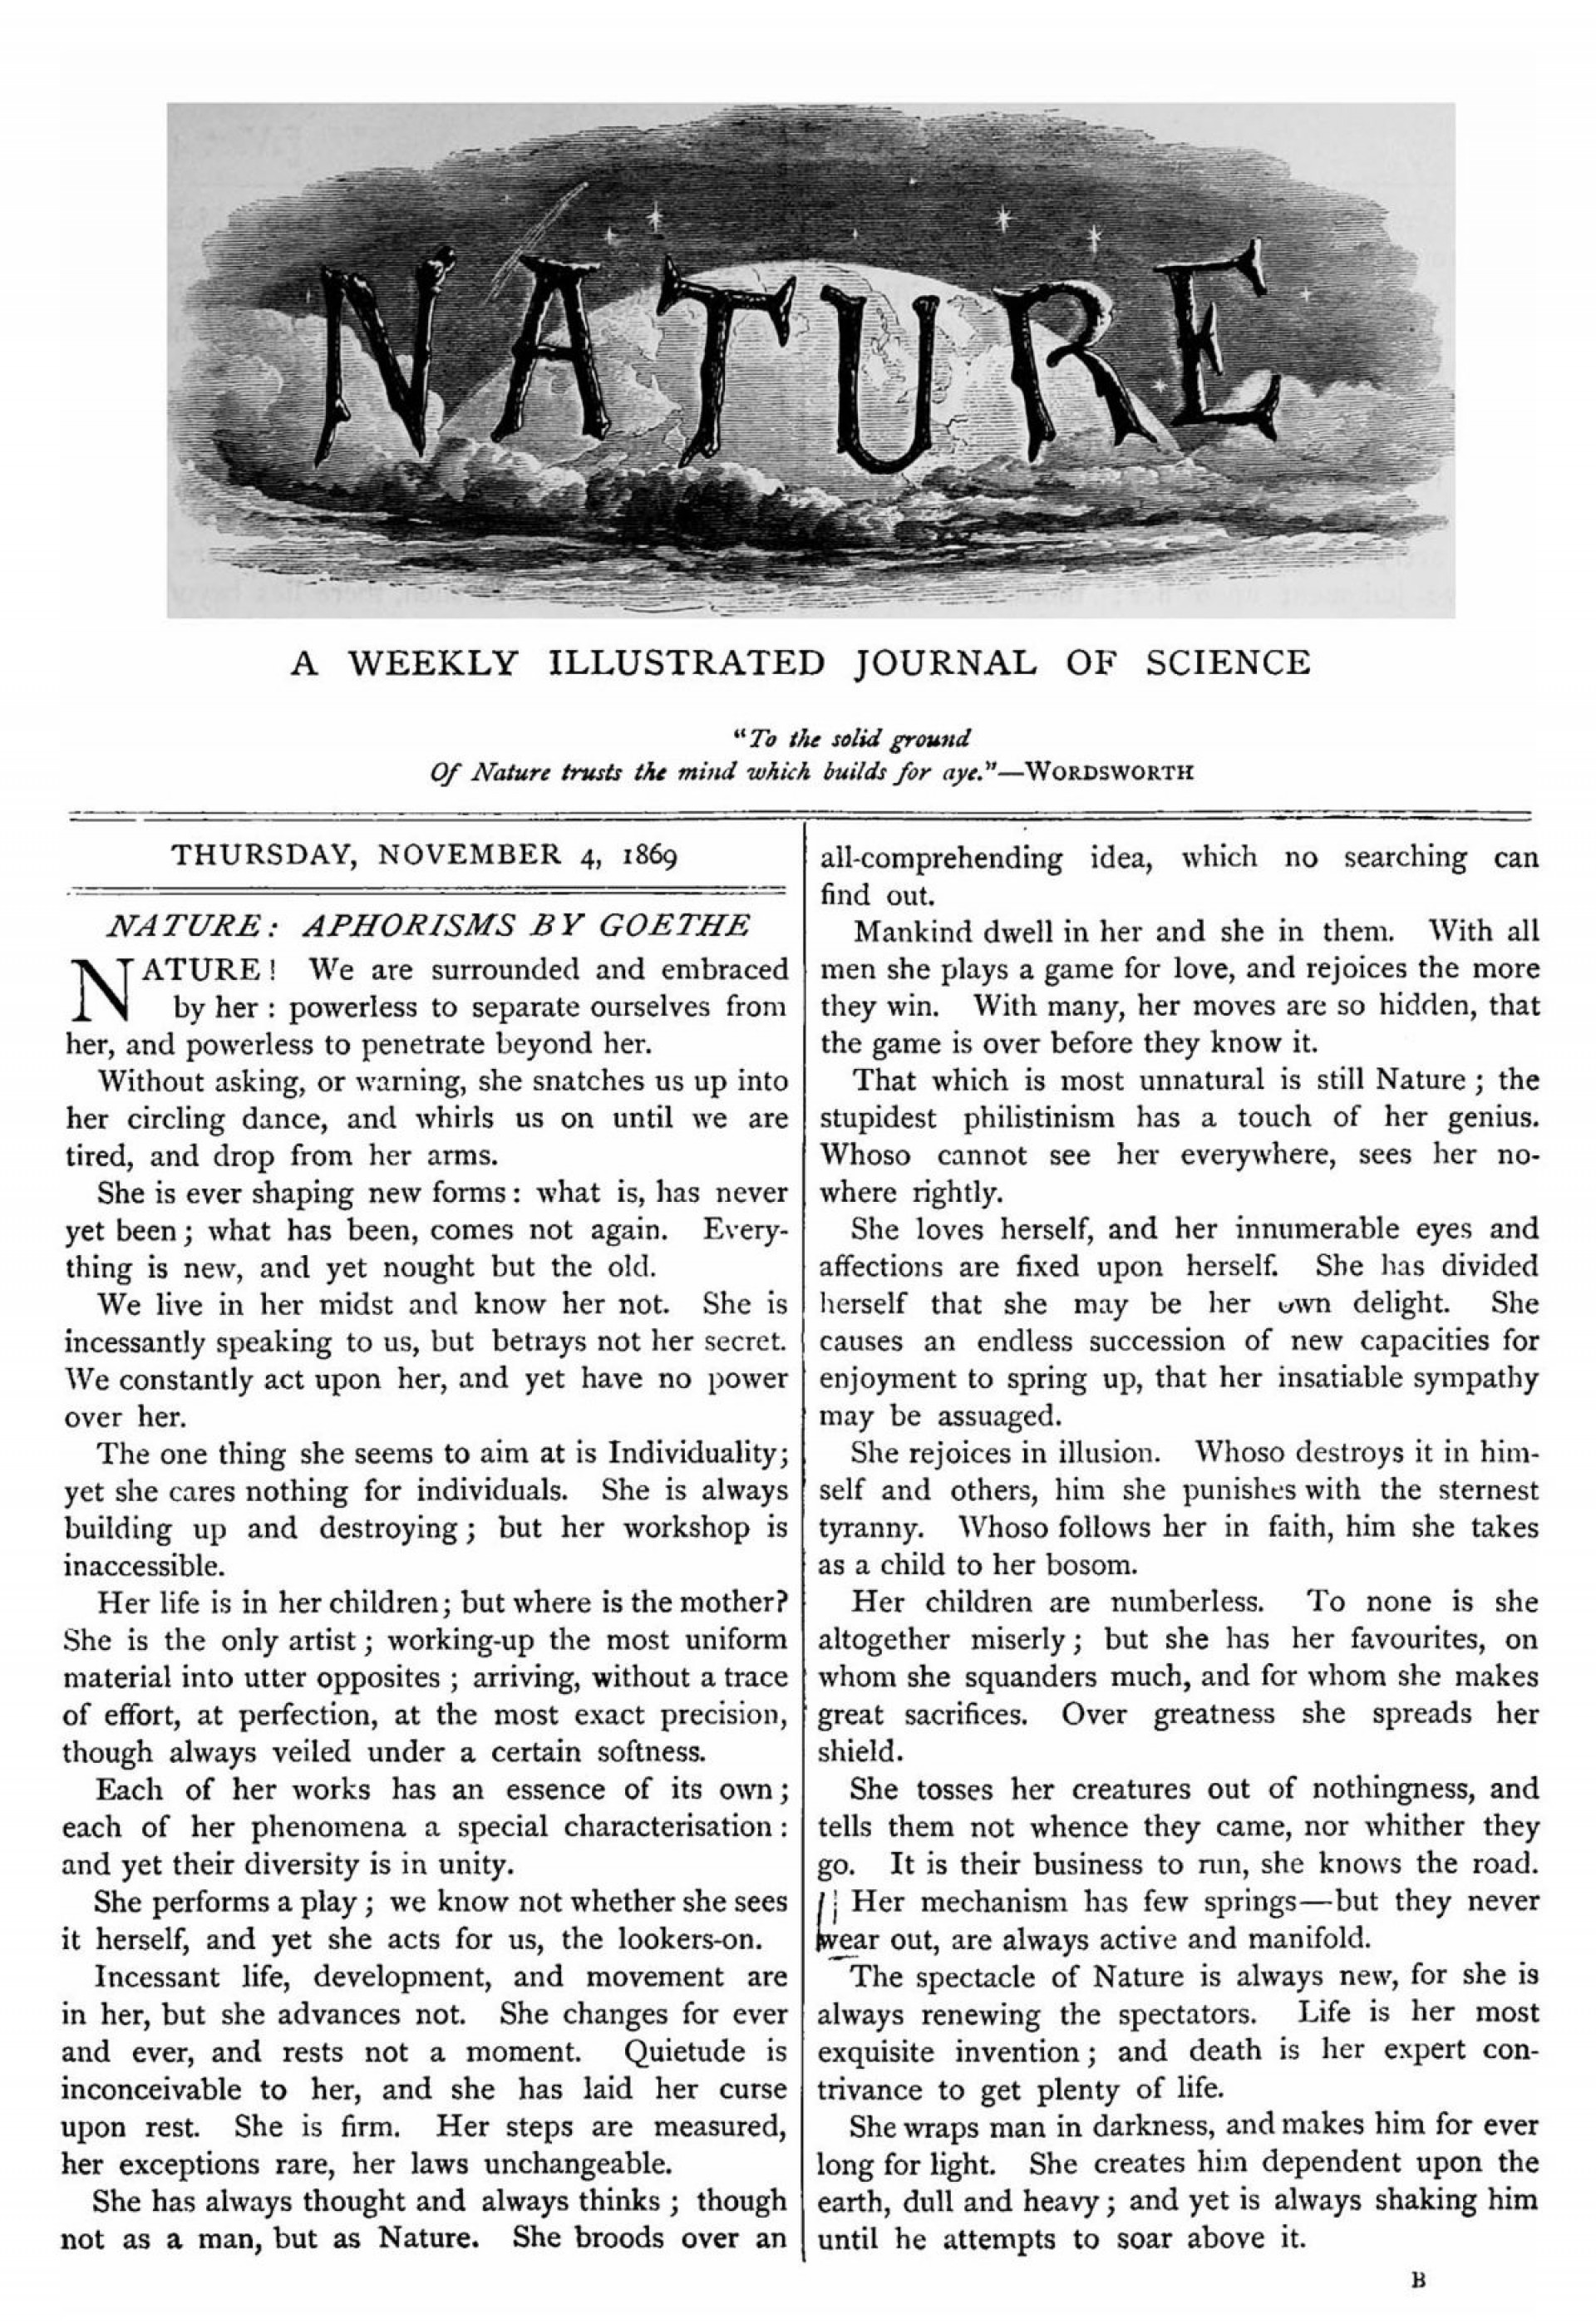 017 Free Research Papers On English Literature Paper 1200px Nature Cover2c November 42c 1869 Amazing 1920